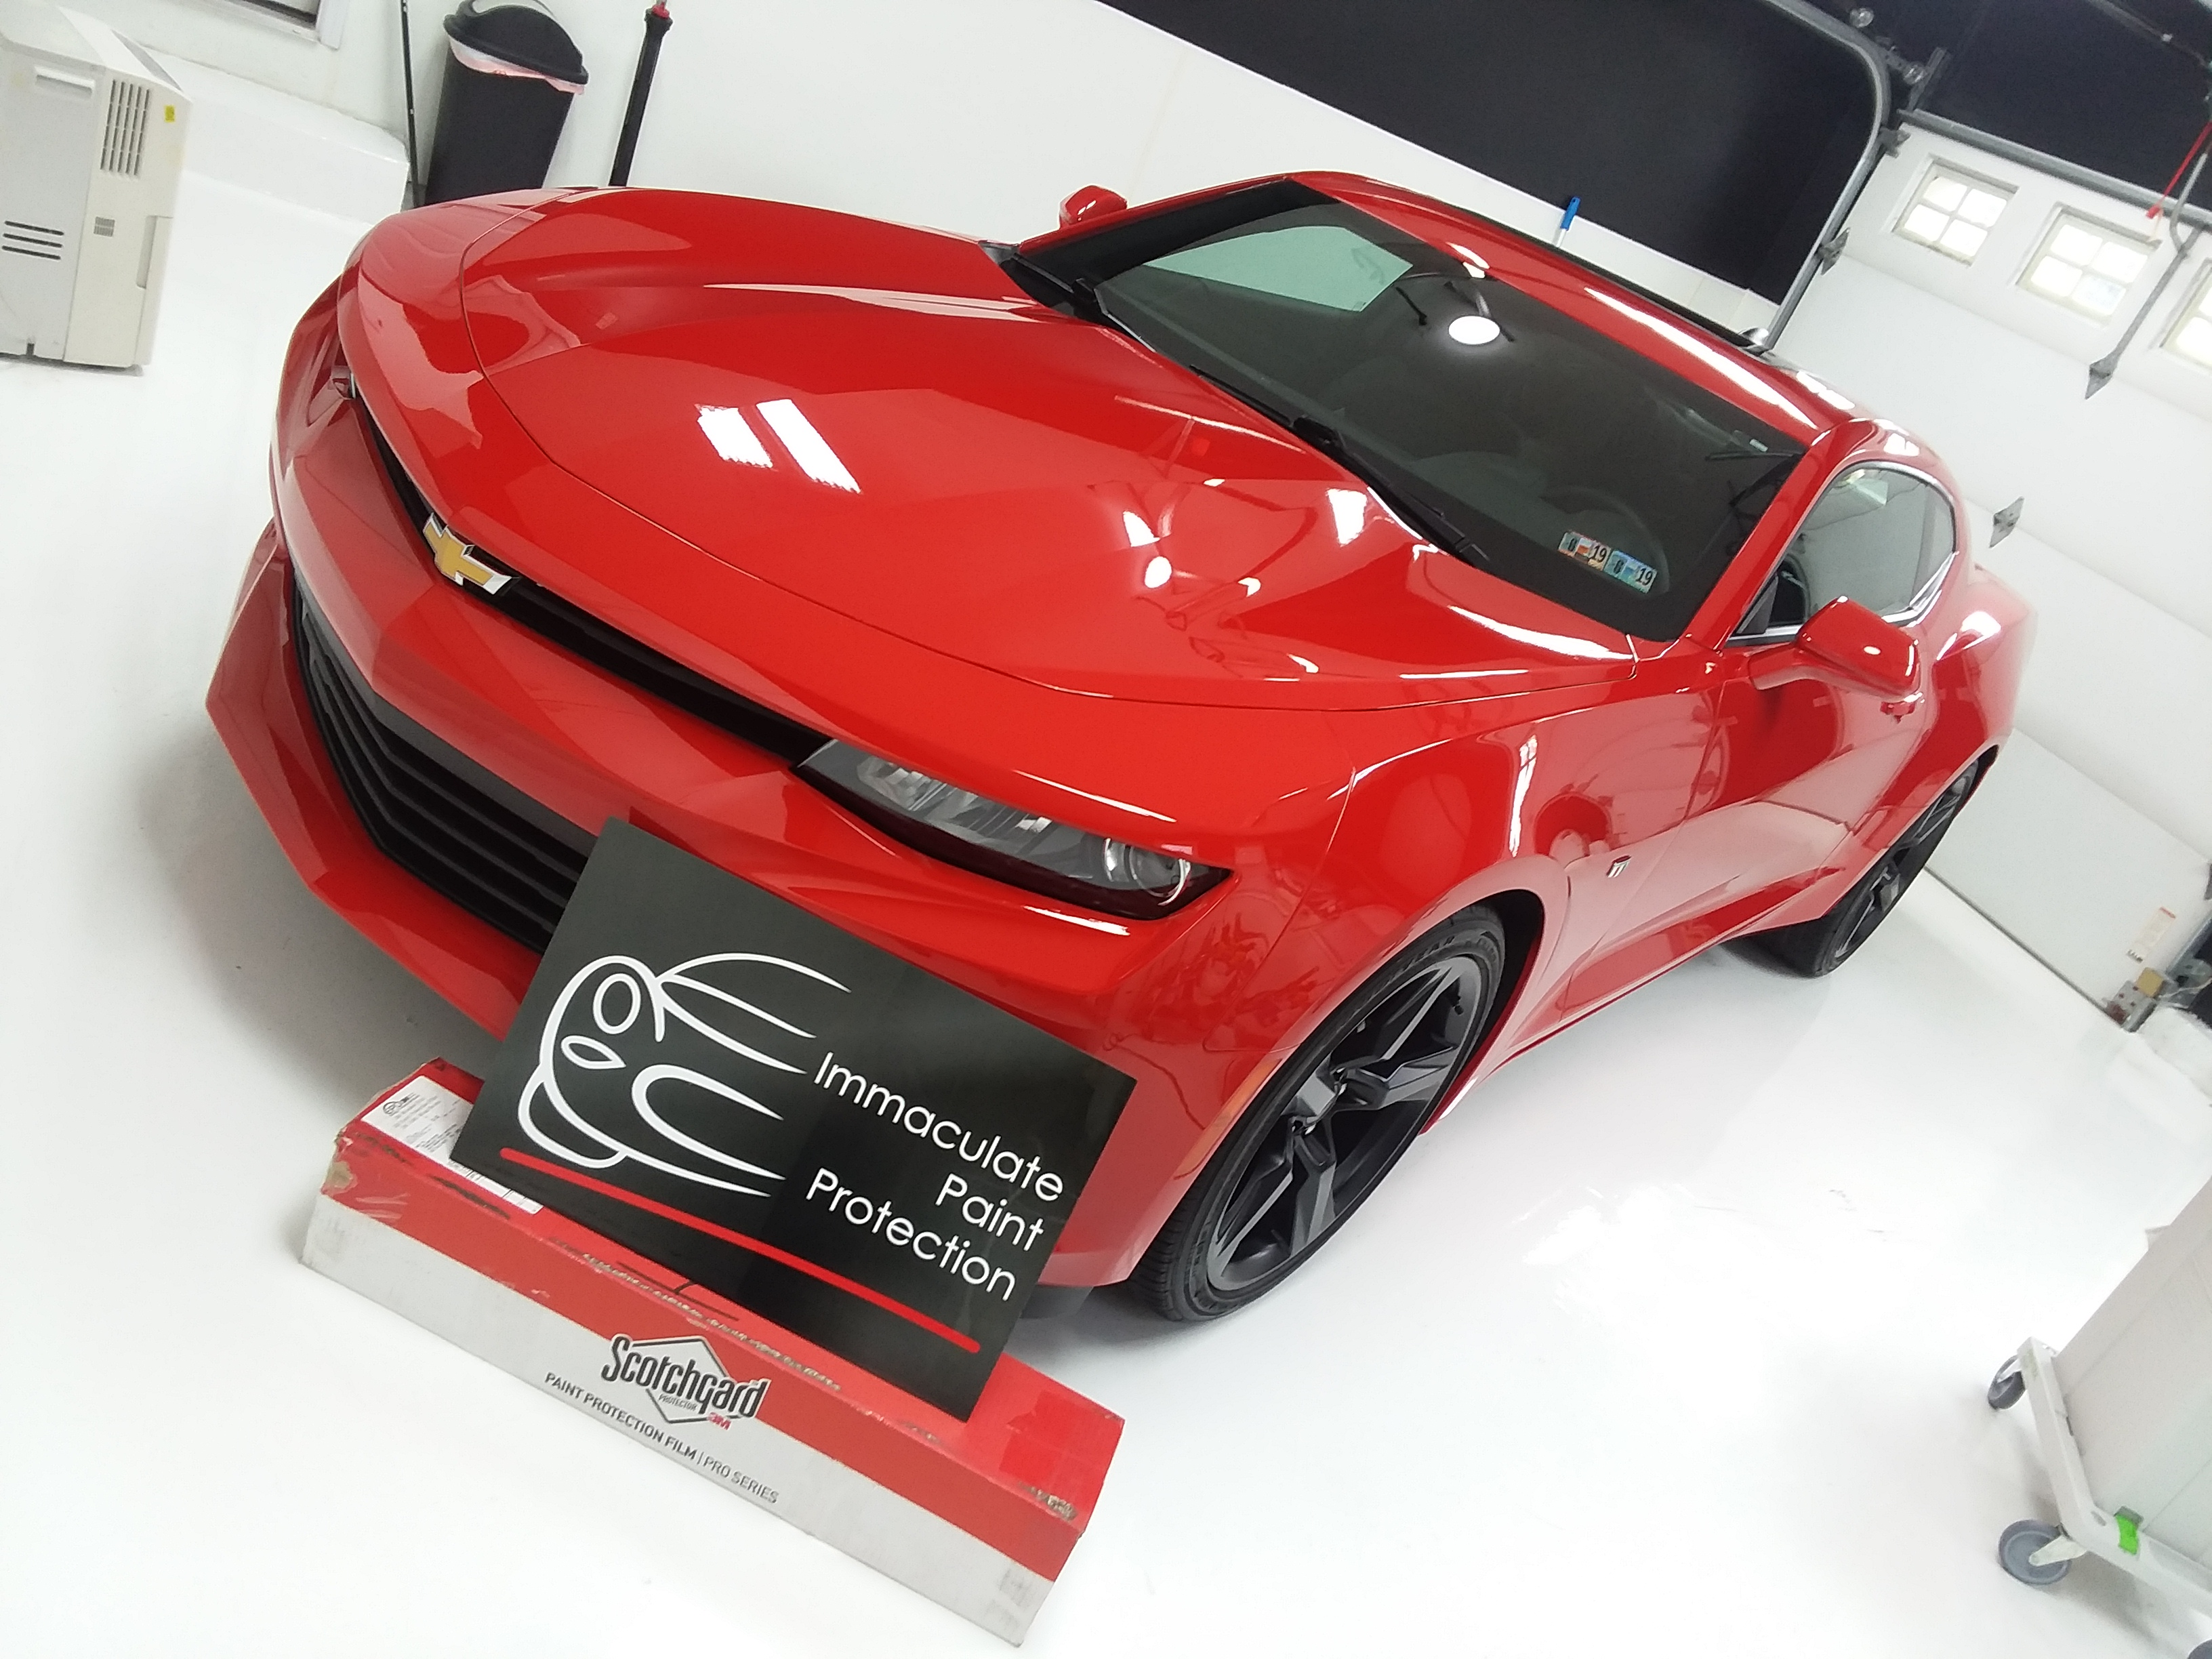 2018 Chevy Camaro No Rock Chips